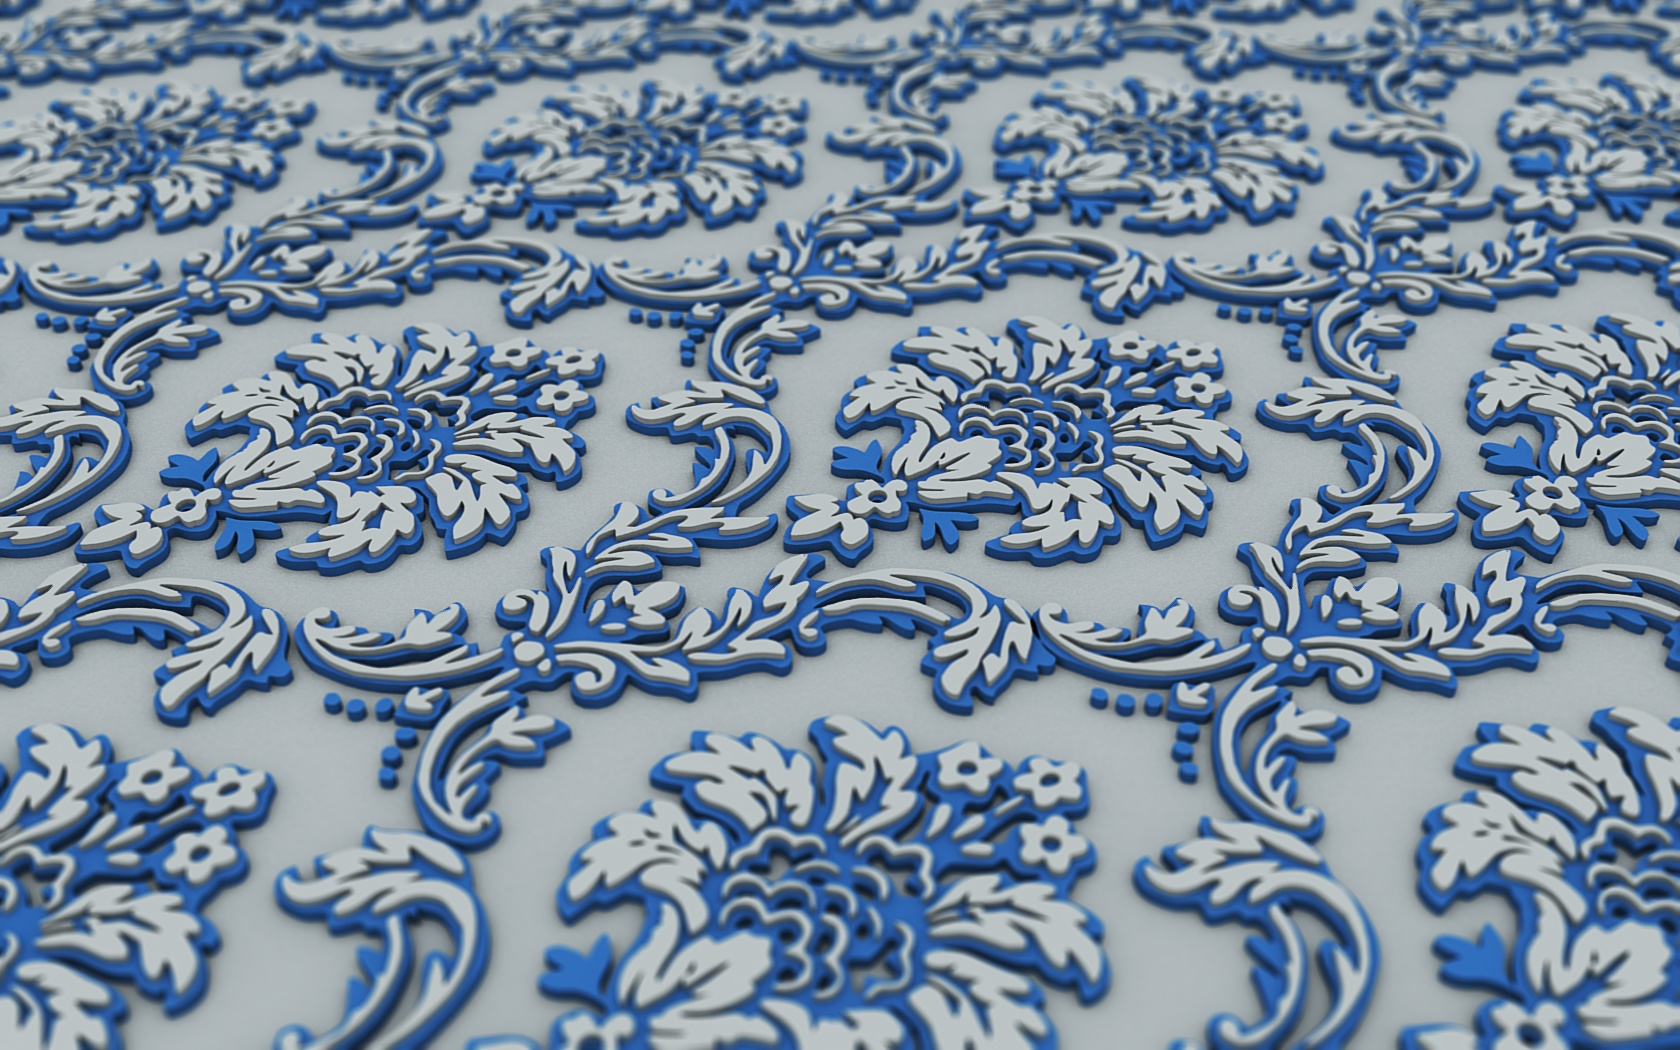 Creating tileable patterns with GIMP, Inkscape and Blender ...